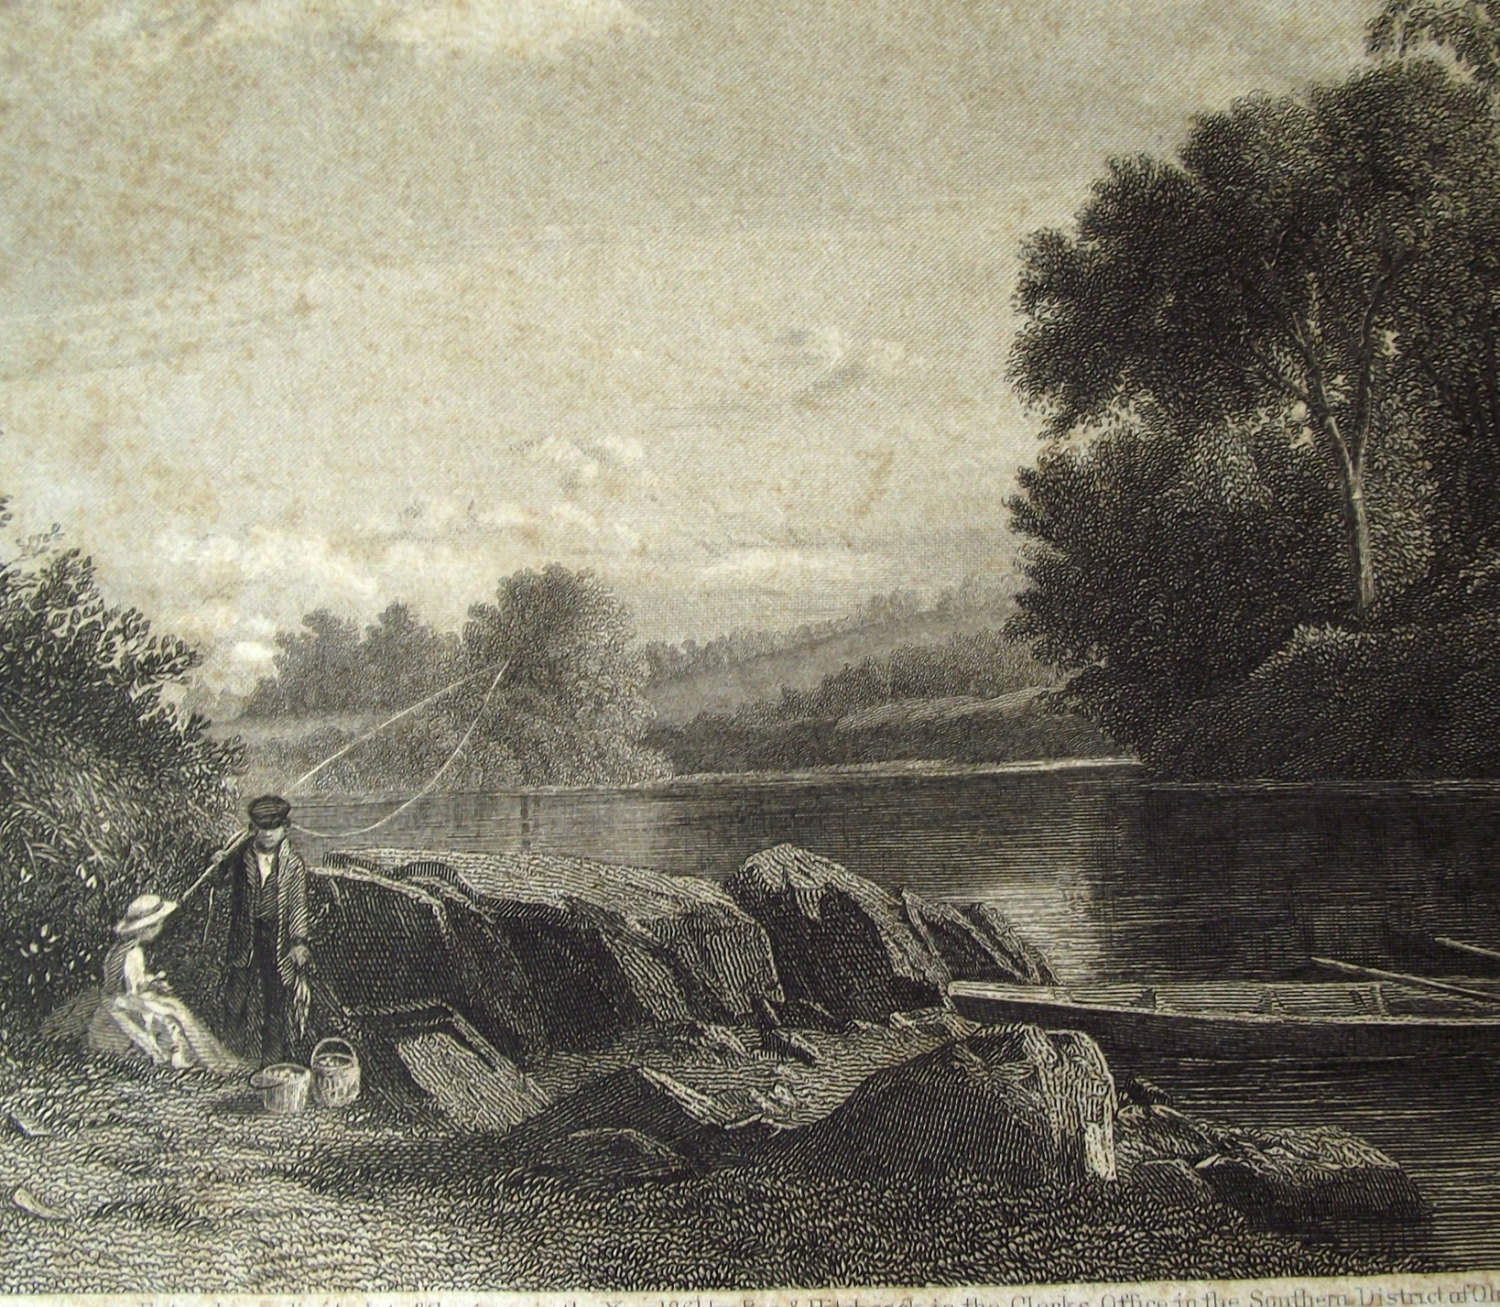 Antique Steel Engraving - Evening on the Connecticut by A. D. Shattuck - W Wellstood